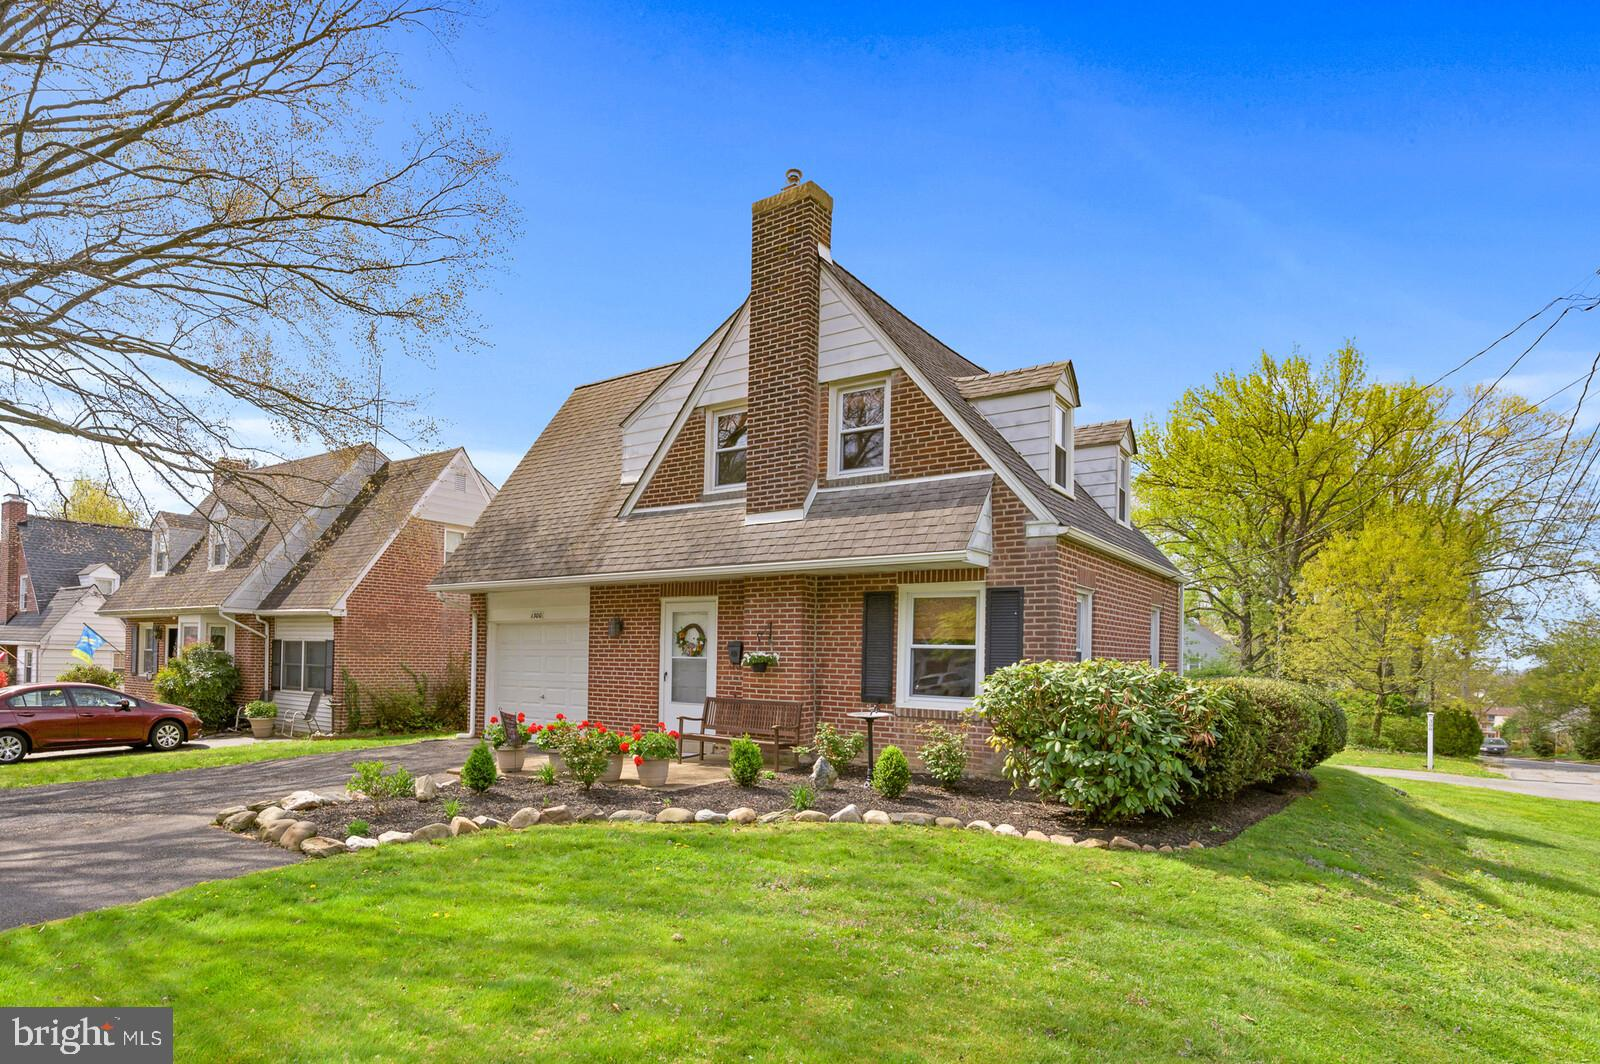 Professional photos coming soon! Welcome to 1300 Lore Avenue. This adorable brick cape cod on a corn